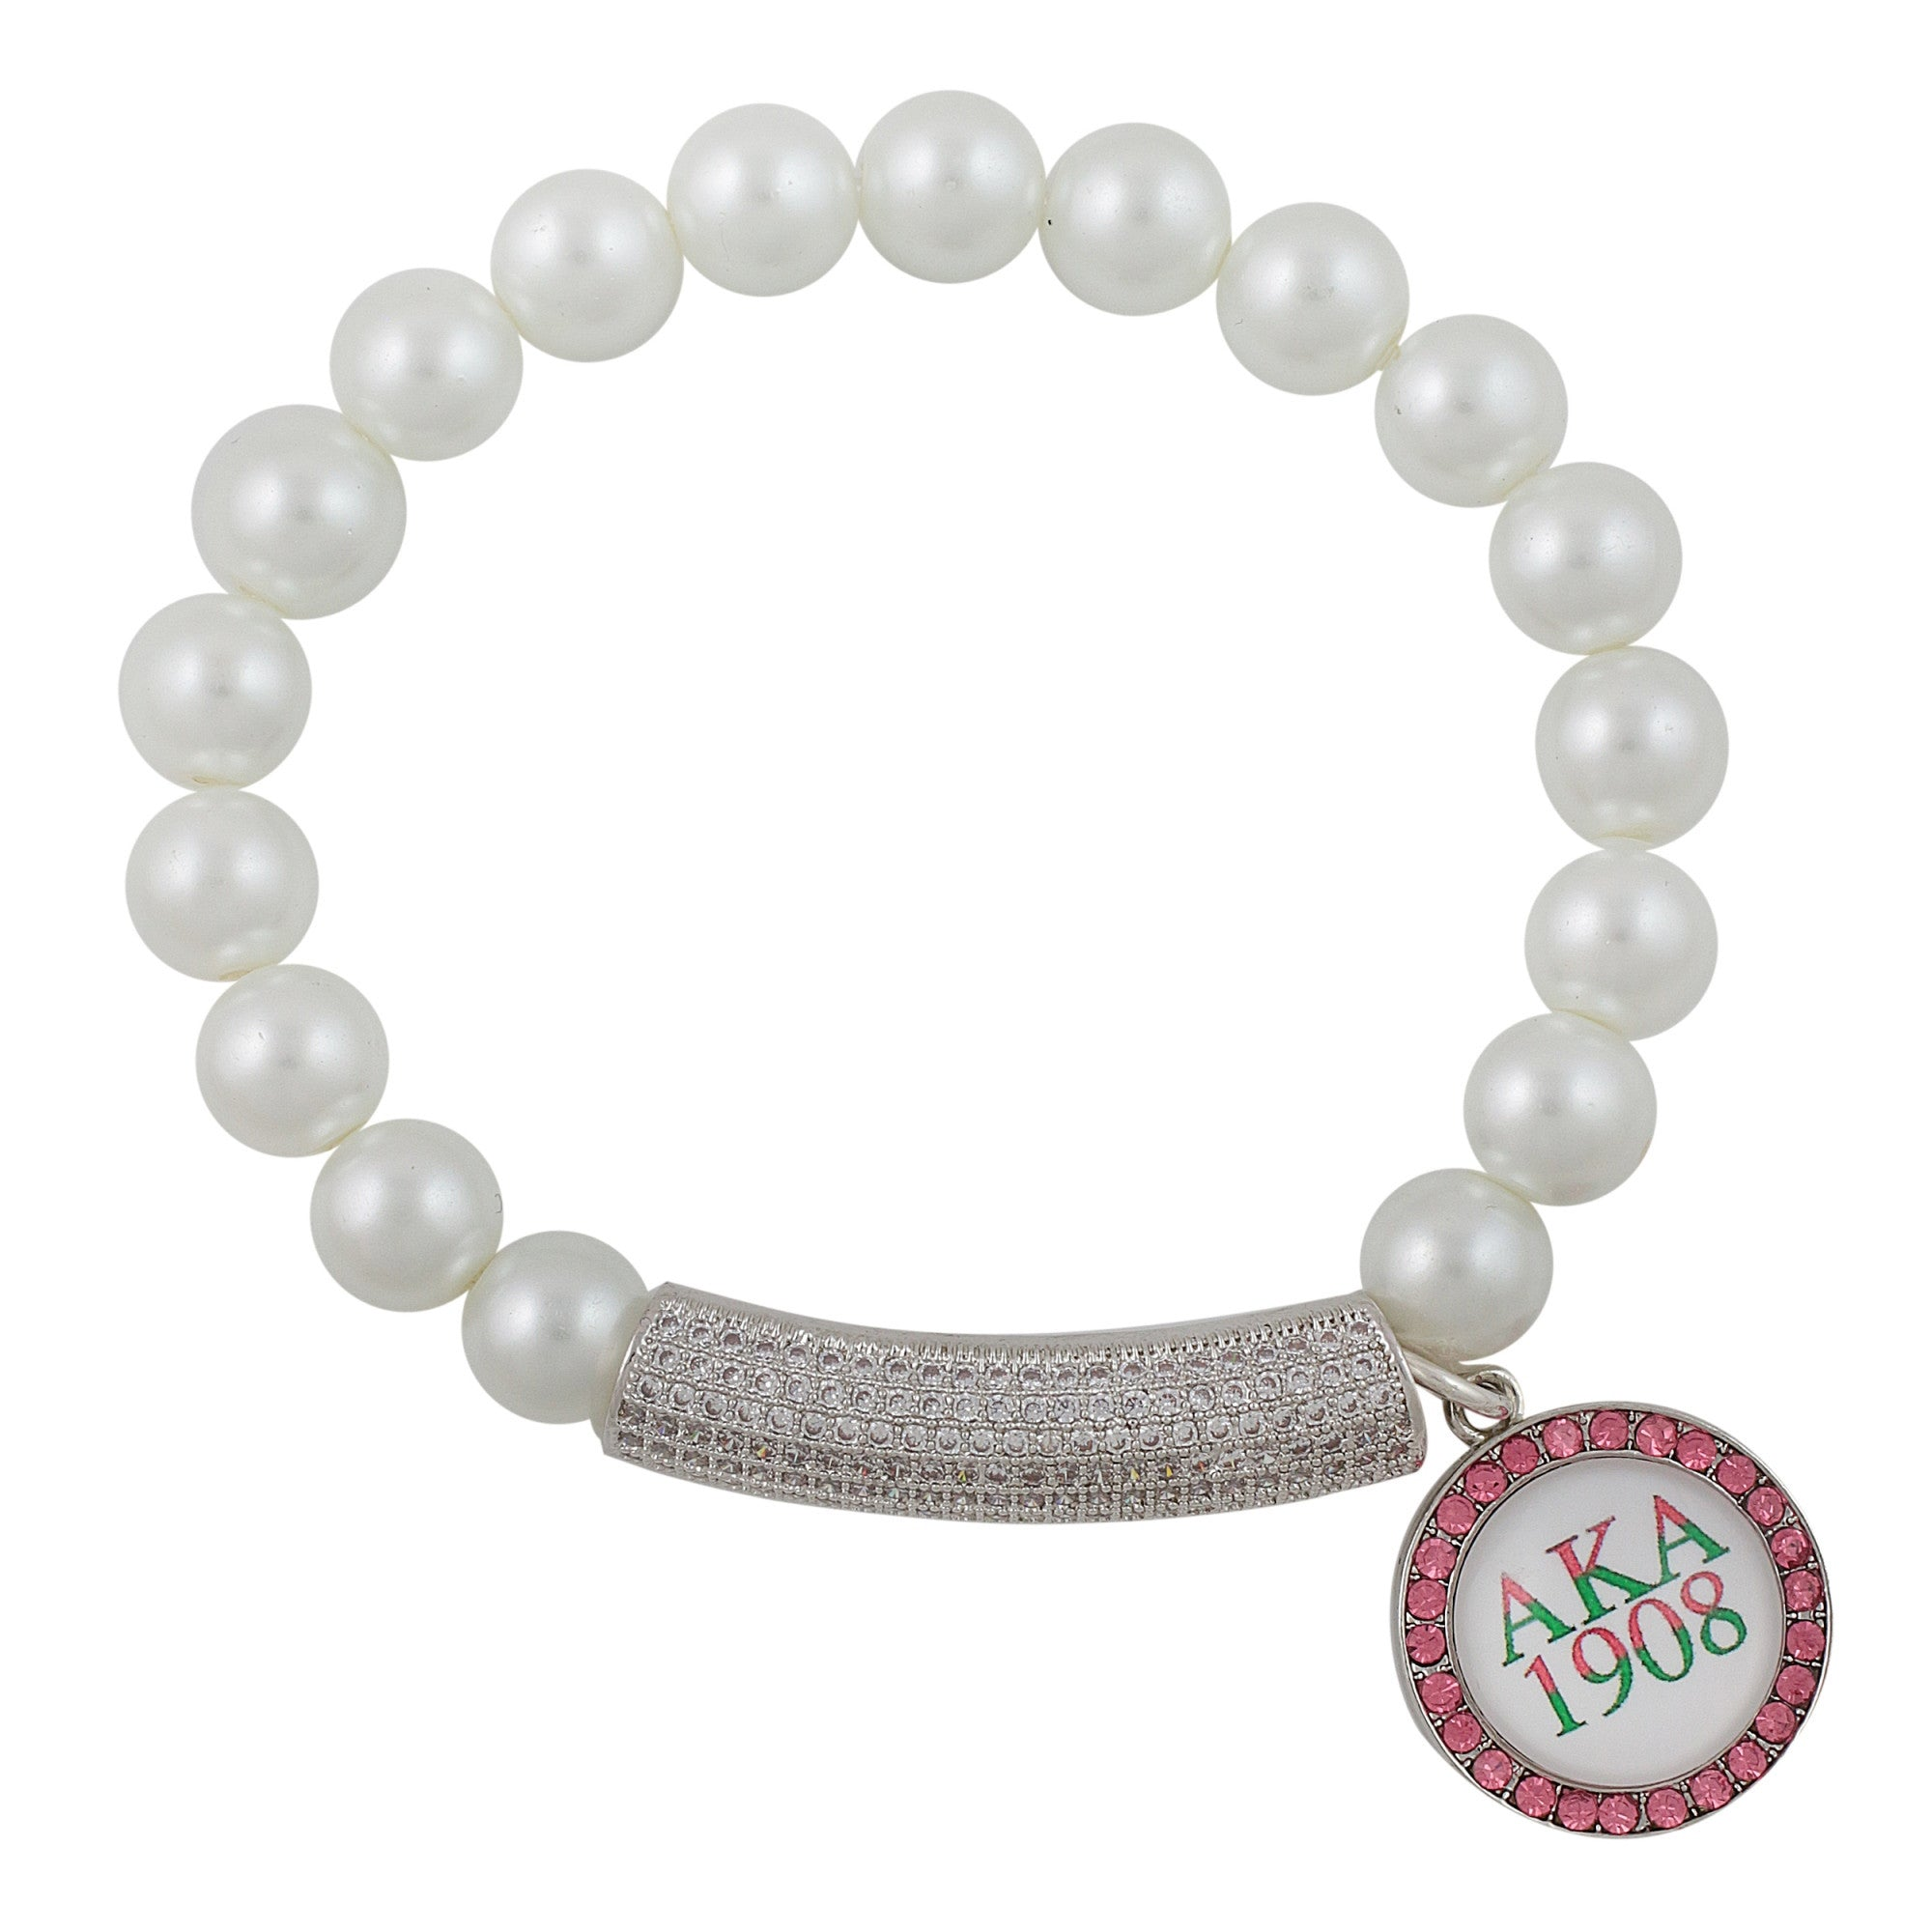 Alpha Kappa Alpha Mother of Pearl Charm Bracelet